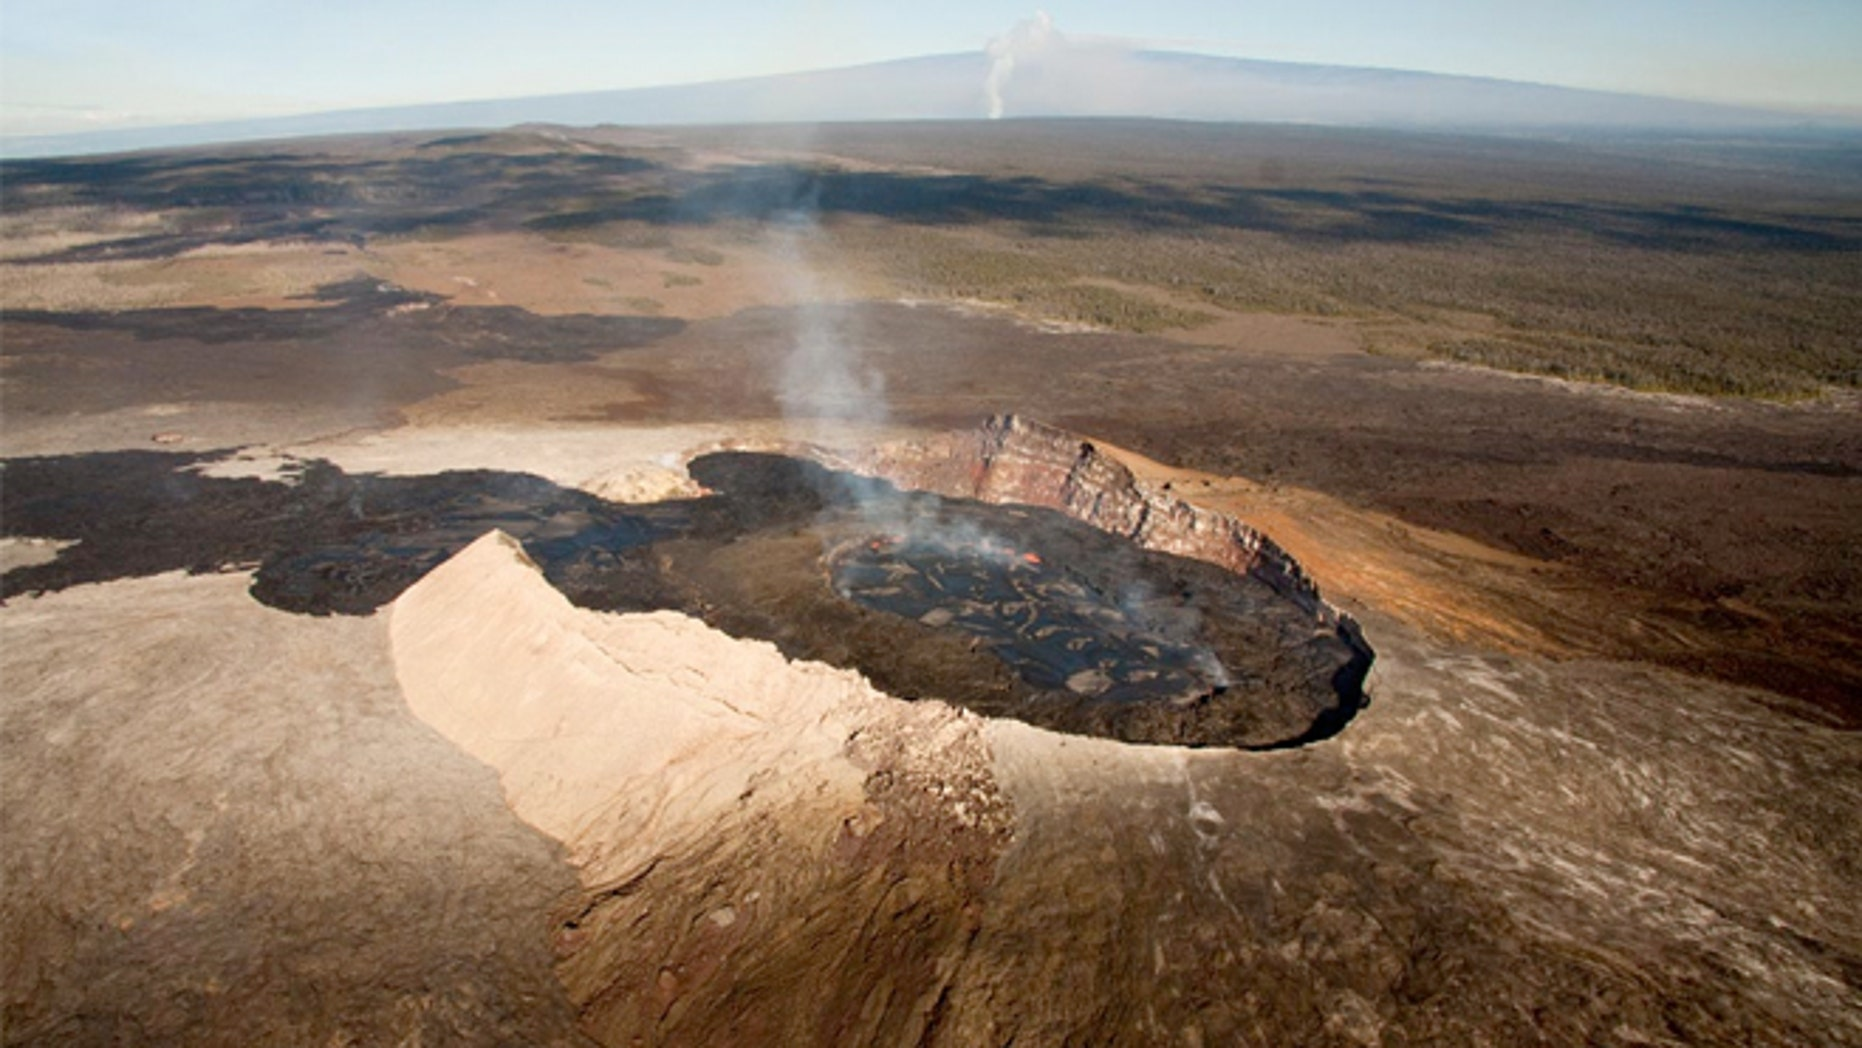 The Halemaumau crater is at the peak of Kilauea, visible here as a rising ash column in the background.